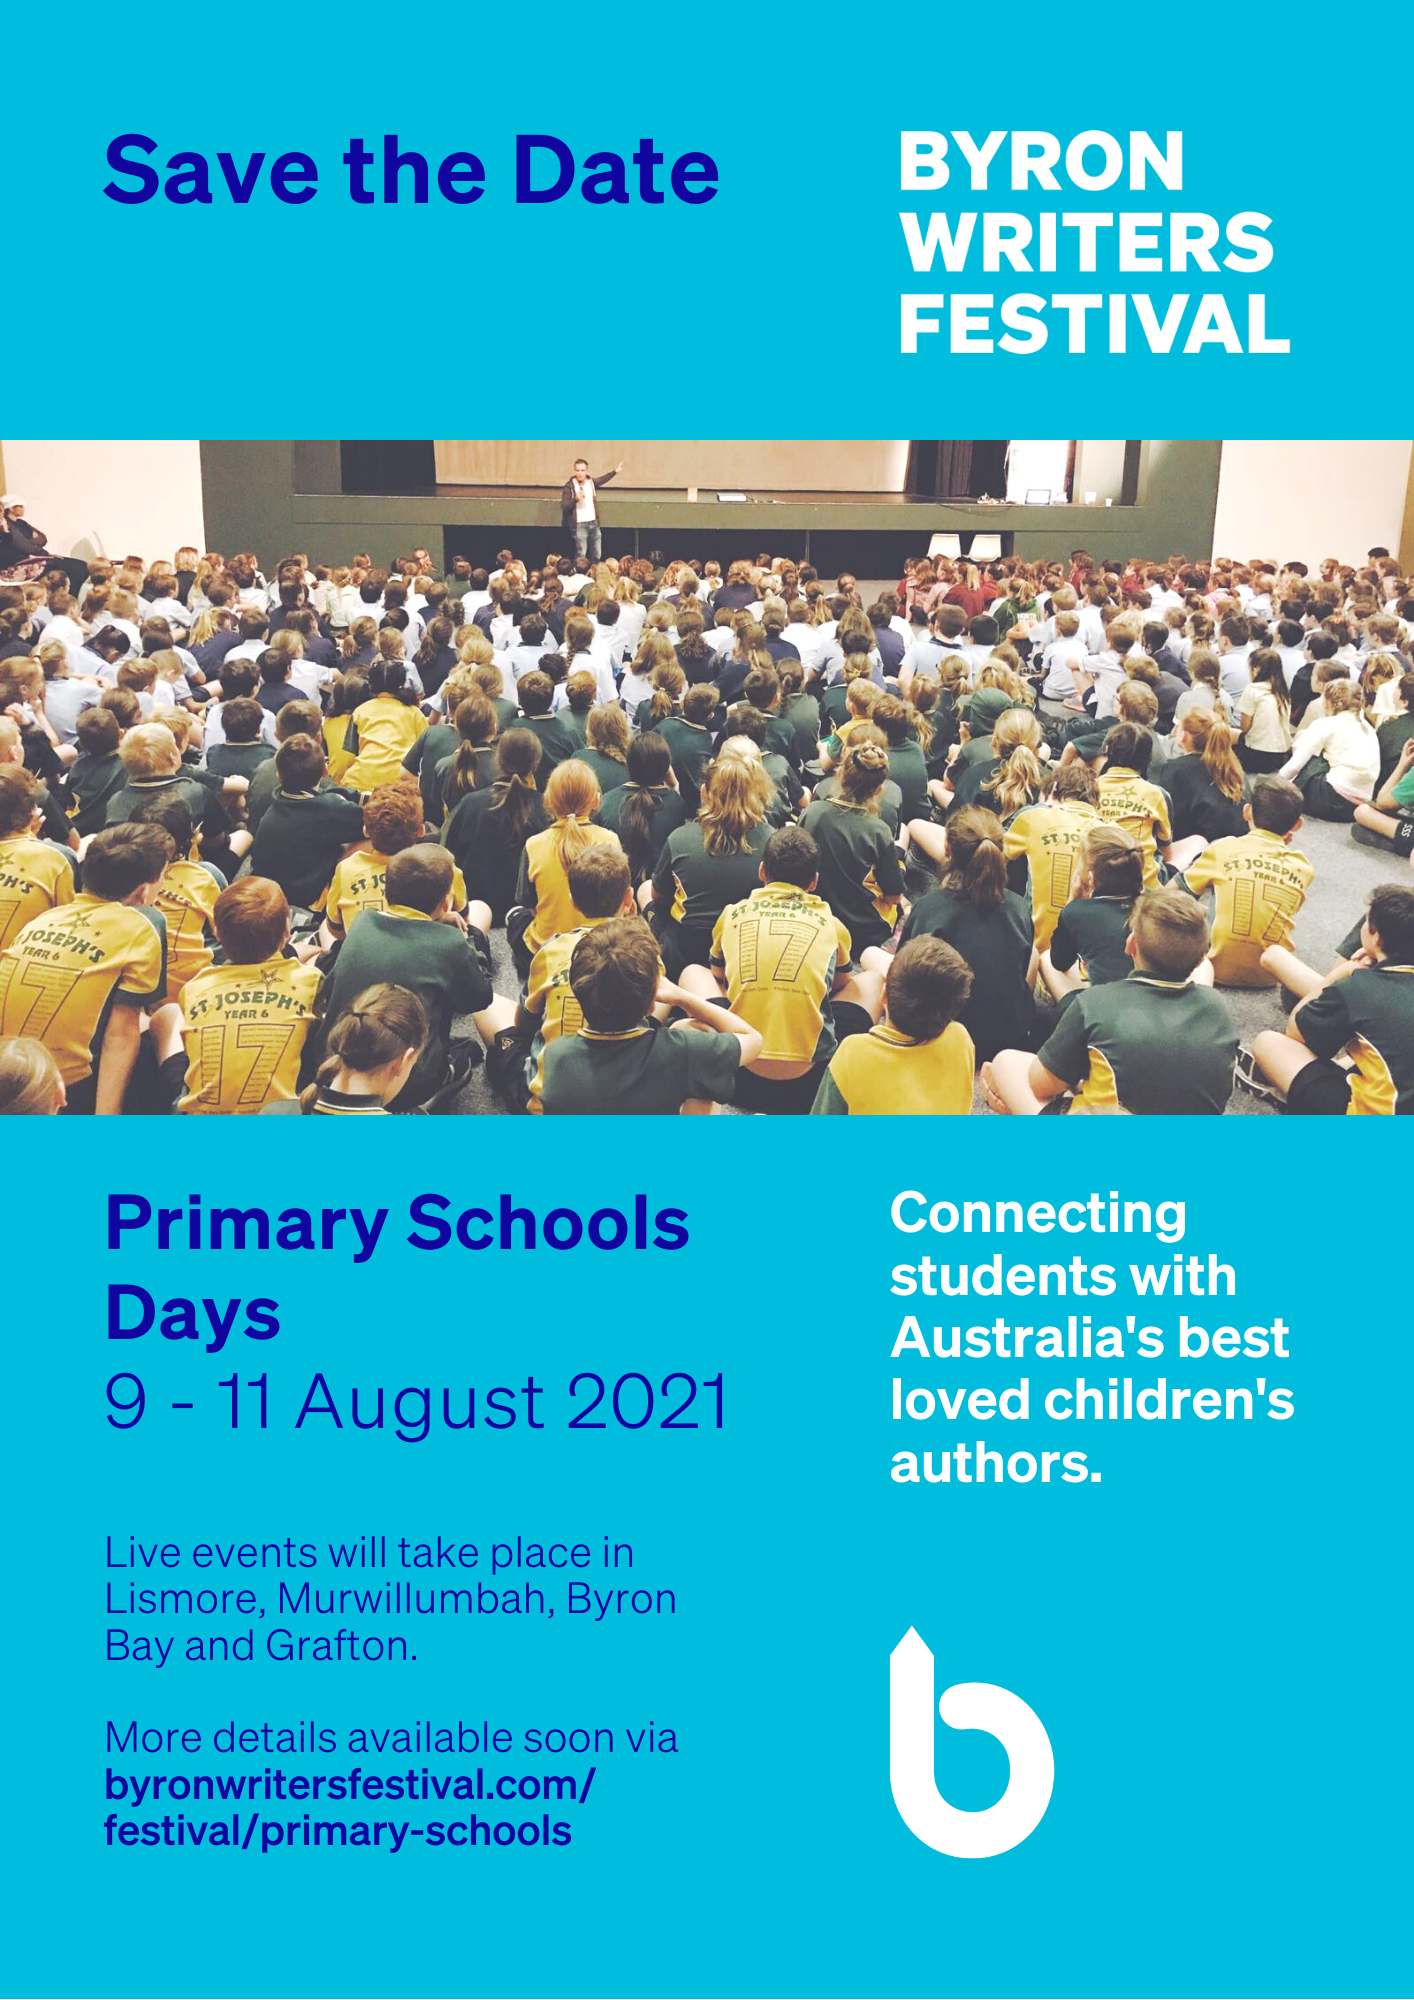 https://byronwritersfestival.com/wp-content/uploads/2021/03/2021-Primary-Schools-Save-the-Date.png